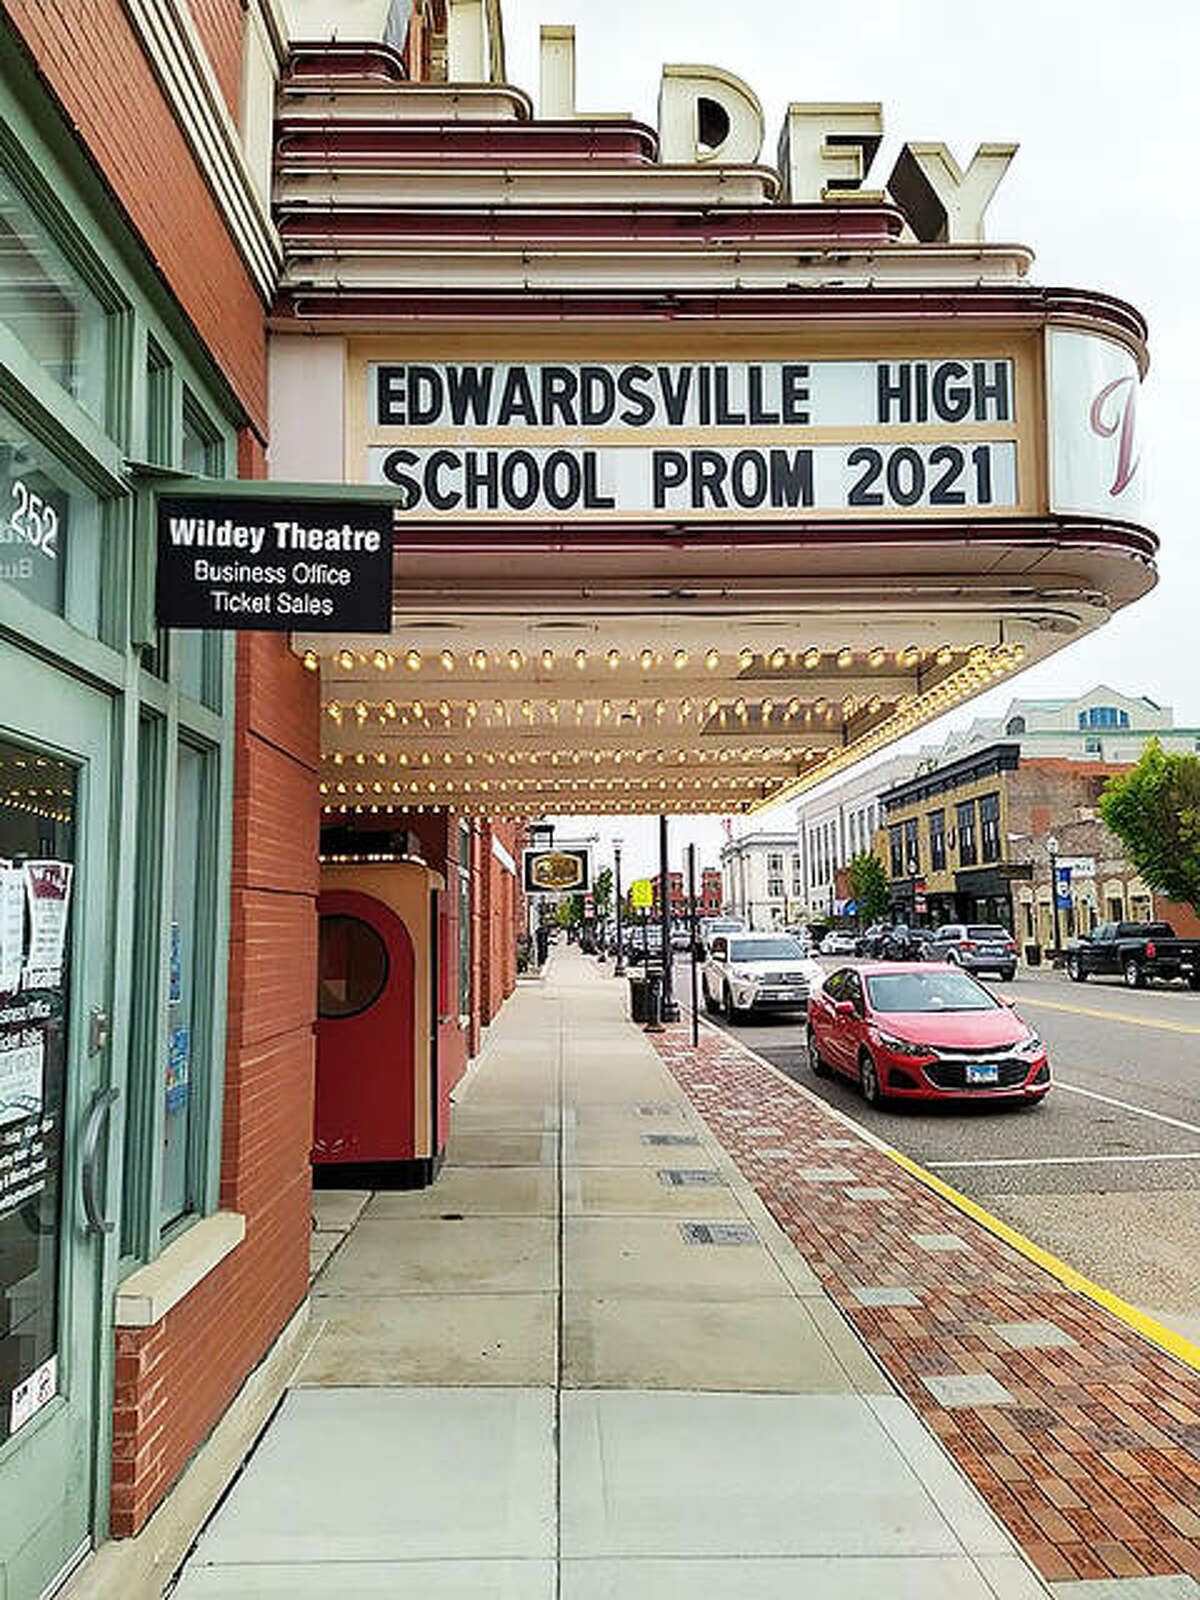 """With Edwardsville High School holding a """"Parking Lot Prom"""" for seniors and graduating juniors from 6 to 8:30 p.m. on Saturday, the Wildey Theatre is resuming its tradition of opening its lobby and event room from 1 to 5:30 p.m. to provide pre-prom photo opportunities for students. Masks are required to enter the building. Last year's EHS prom and the pre-prom event at the Wildey were canceled due to the COVID-19 pandemic."""